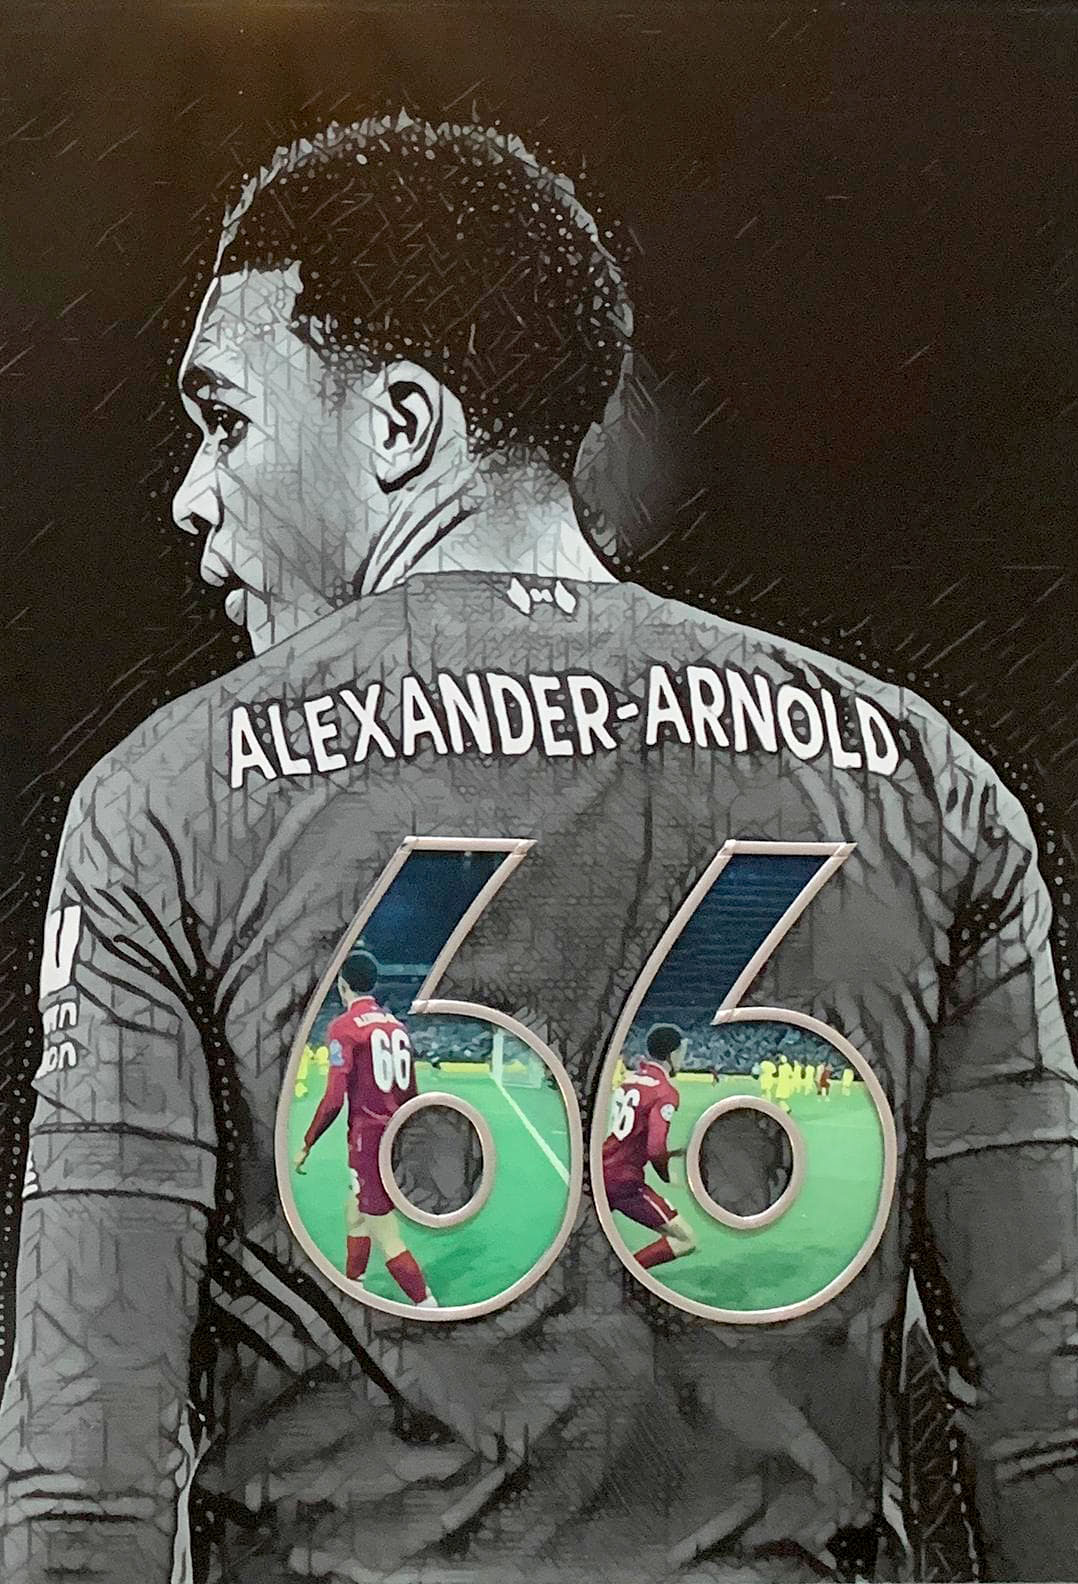 Trent Alexander-Arnold (Large) by Paul Marshall Johnson